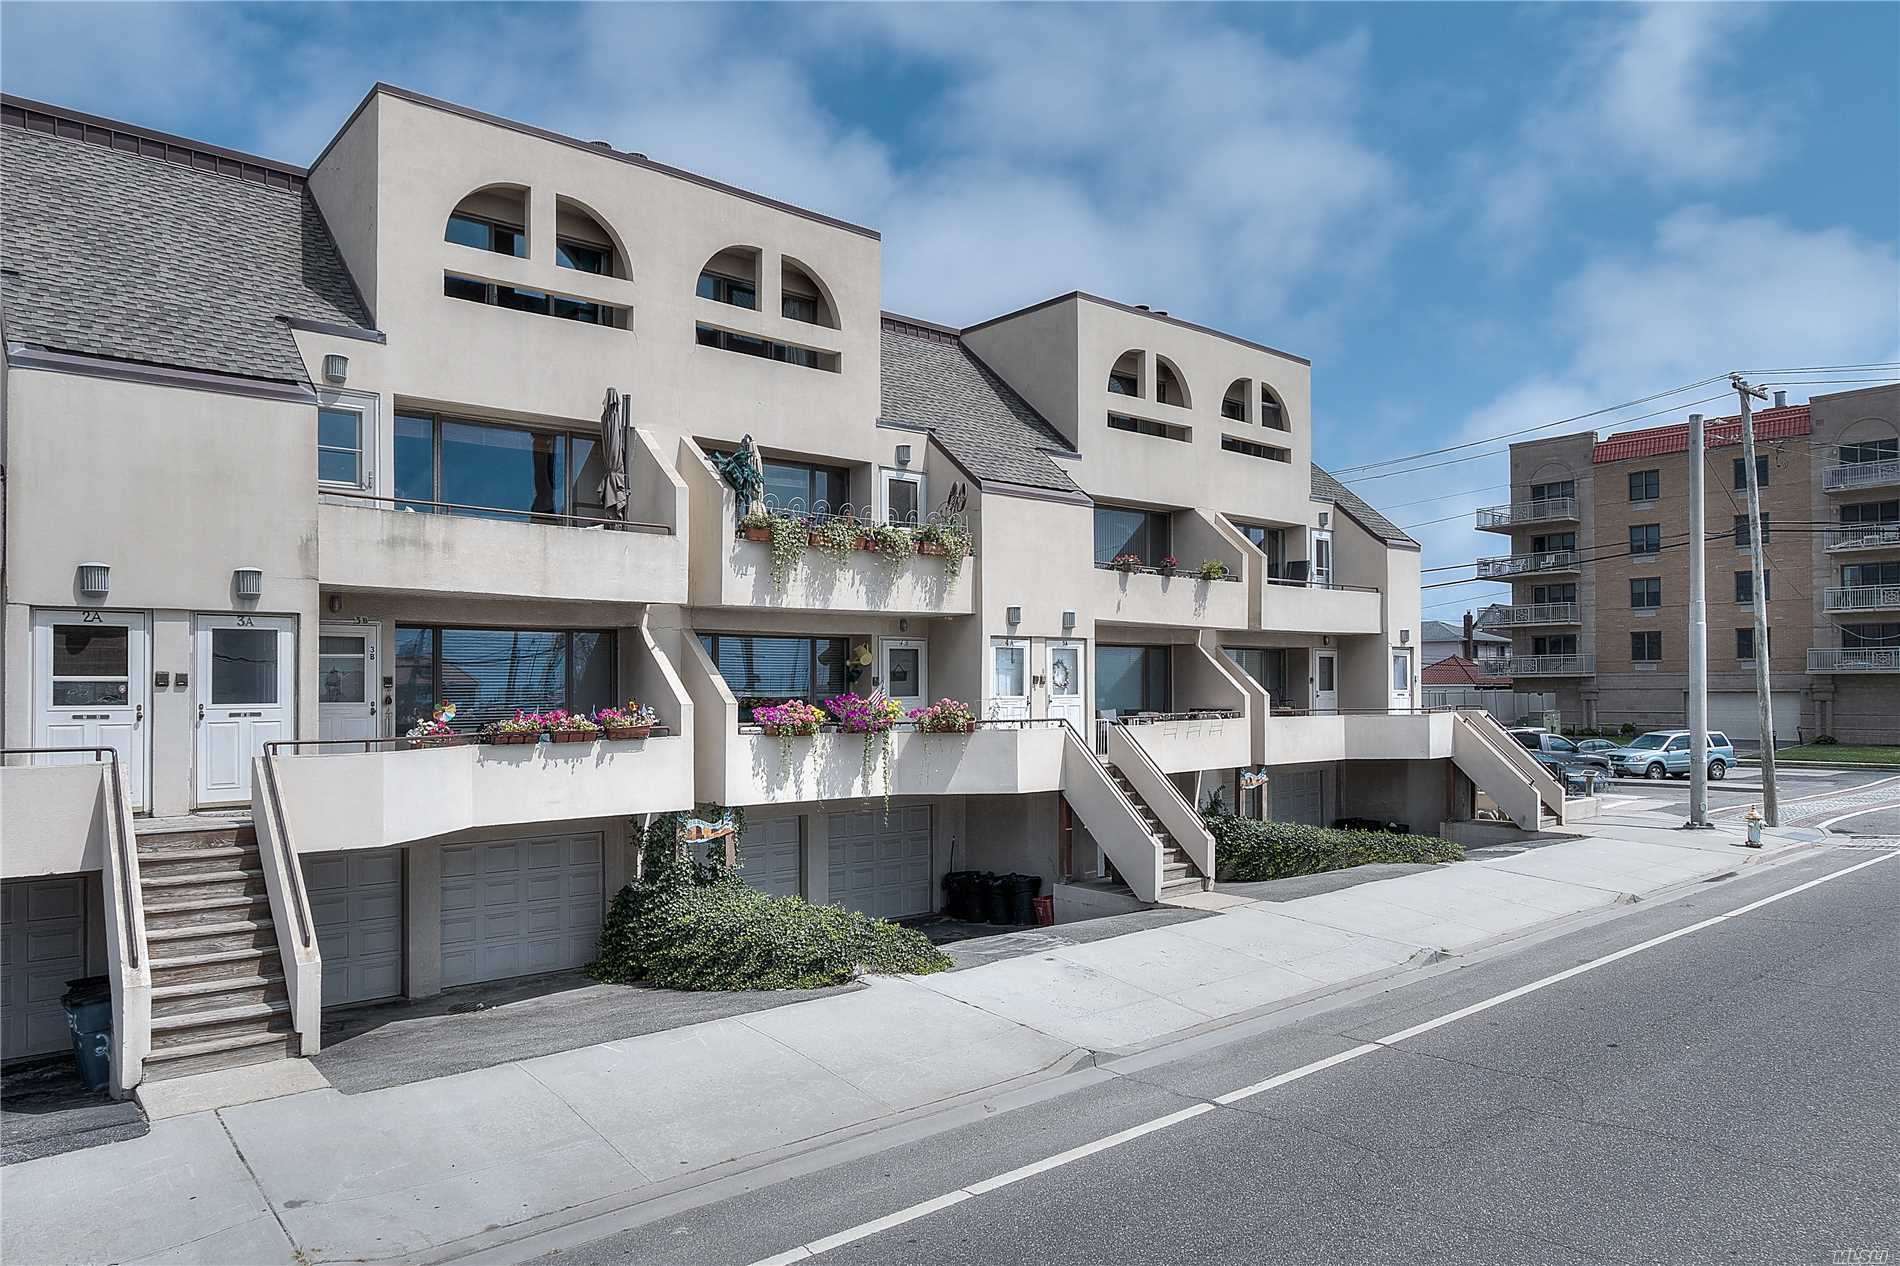 Property for sale at 75 E Broadway, Long Beach,  NY 11561